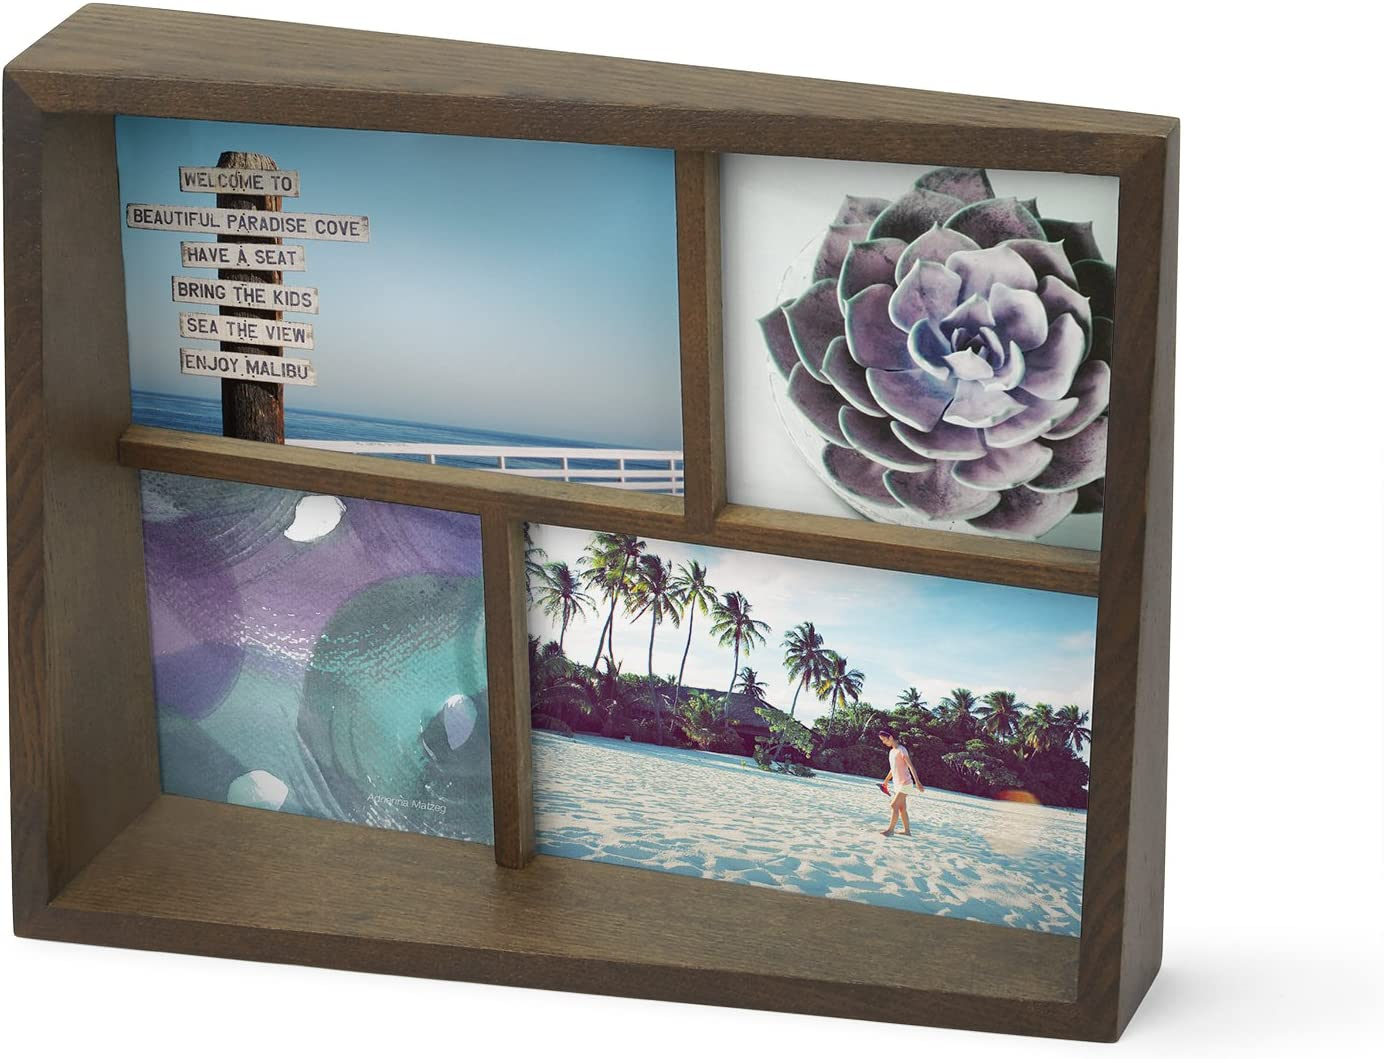 Umbra Edge Wooden Multi-Opening Picture Frame and Photo Display for Desk or Table Top, Aged Walnut